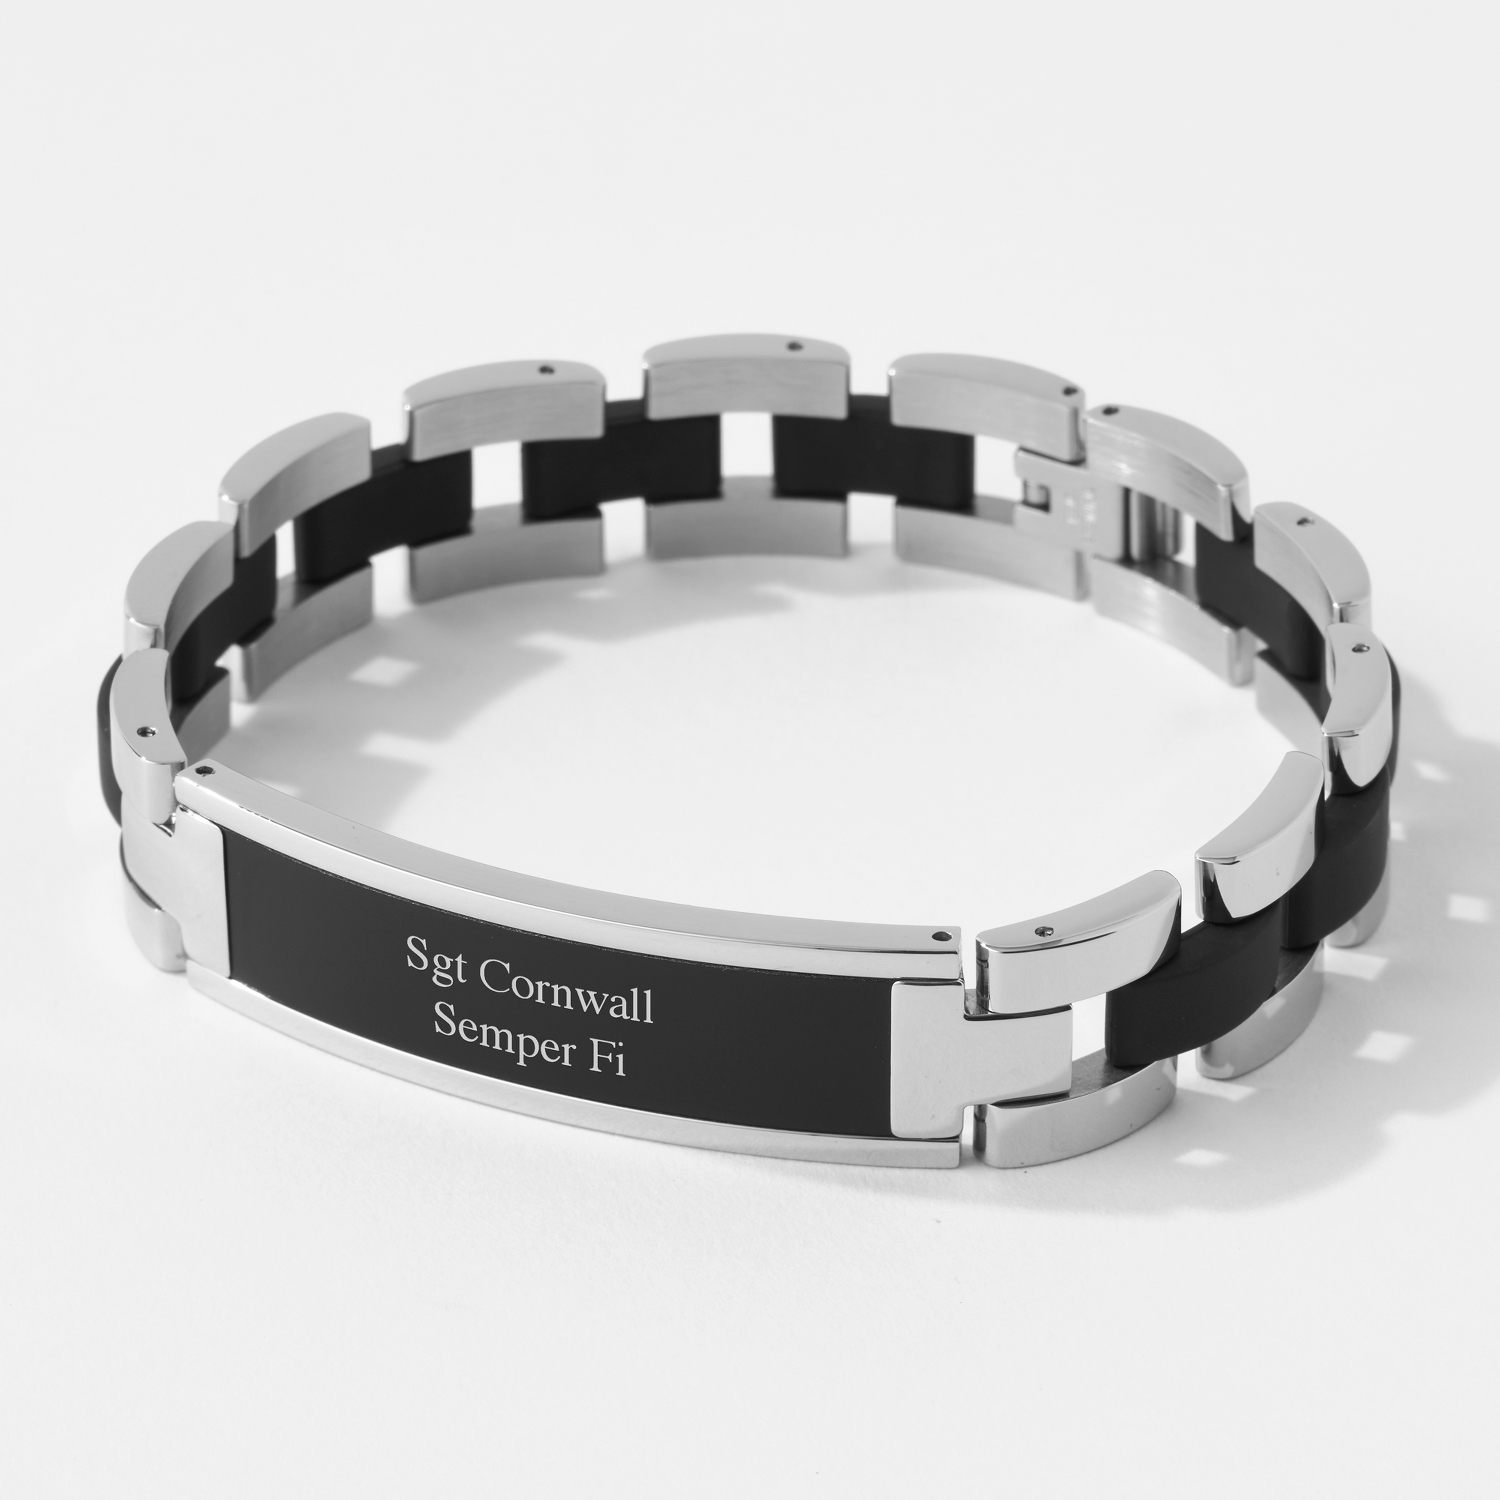 alert id identification wristband wide medical stainless steel bracelet